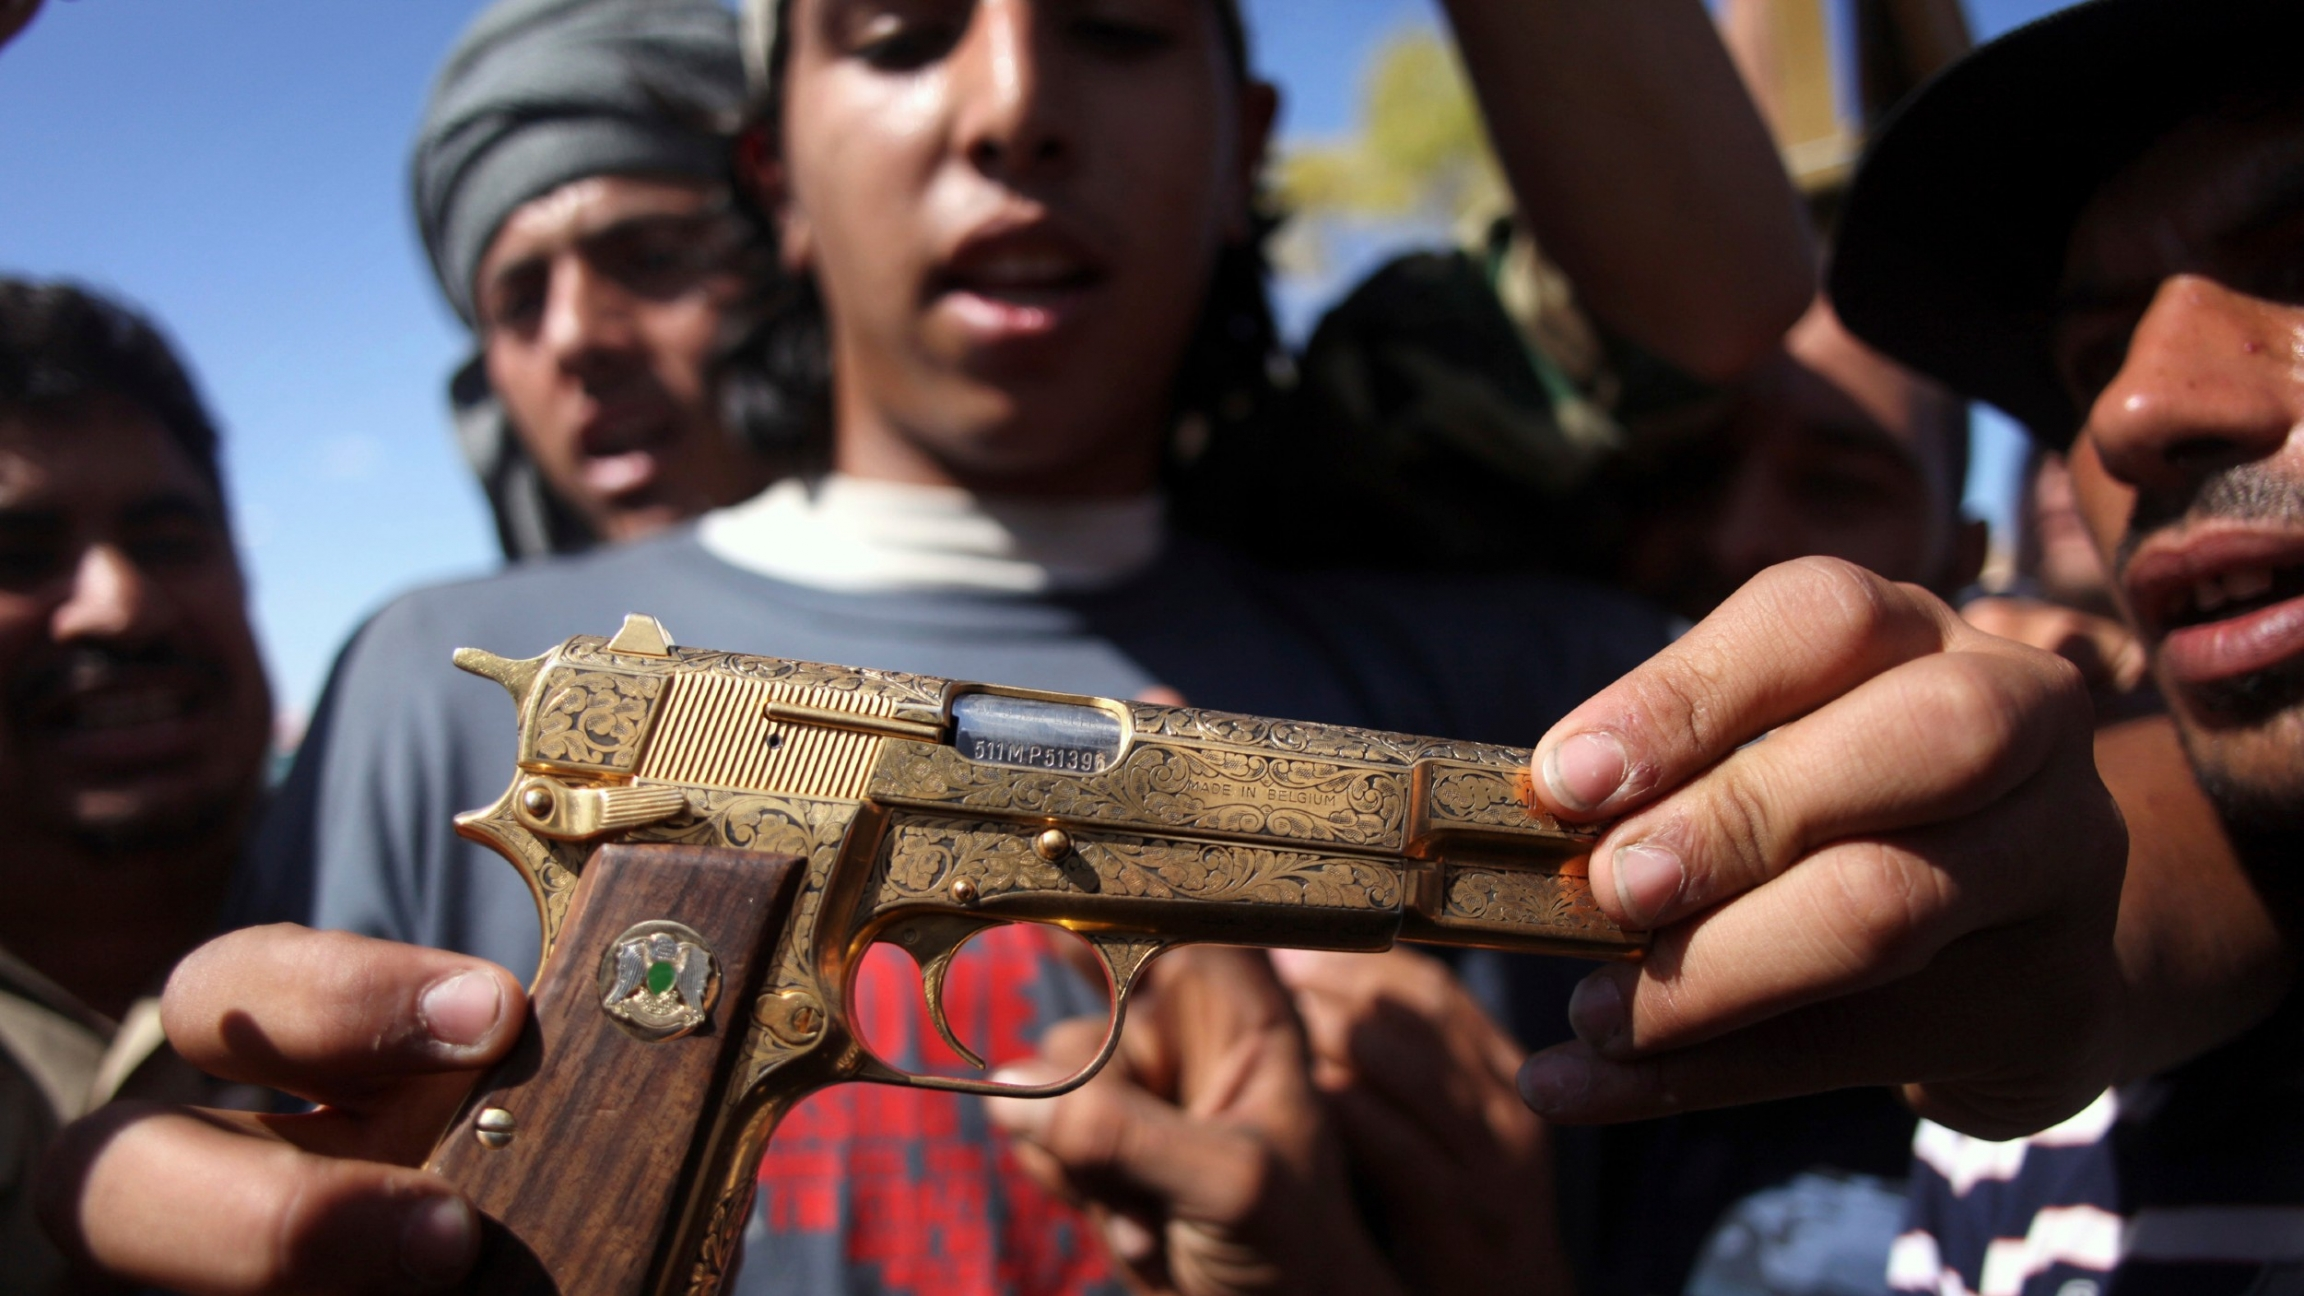 Mohammed al-Babi holds a golden pistol he says belonged to Muammar Gadhafi in Sirte, Libya.